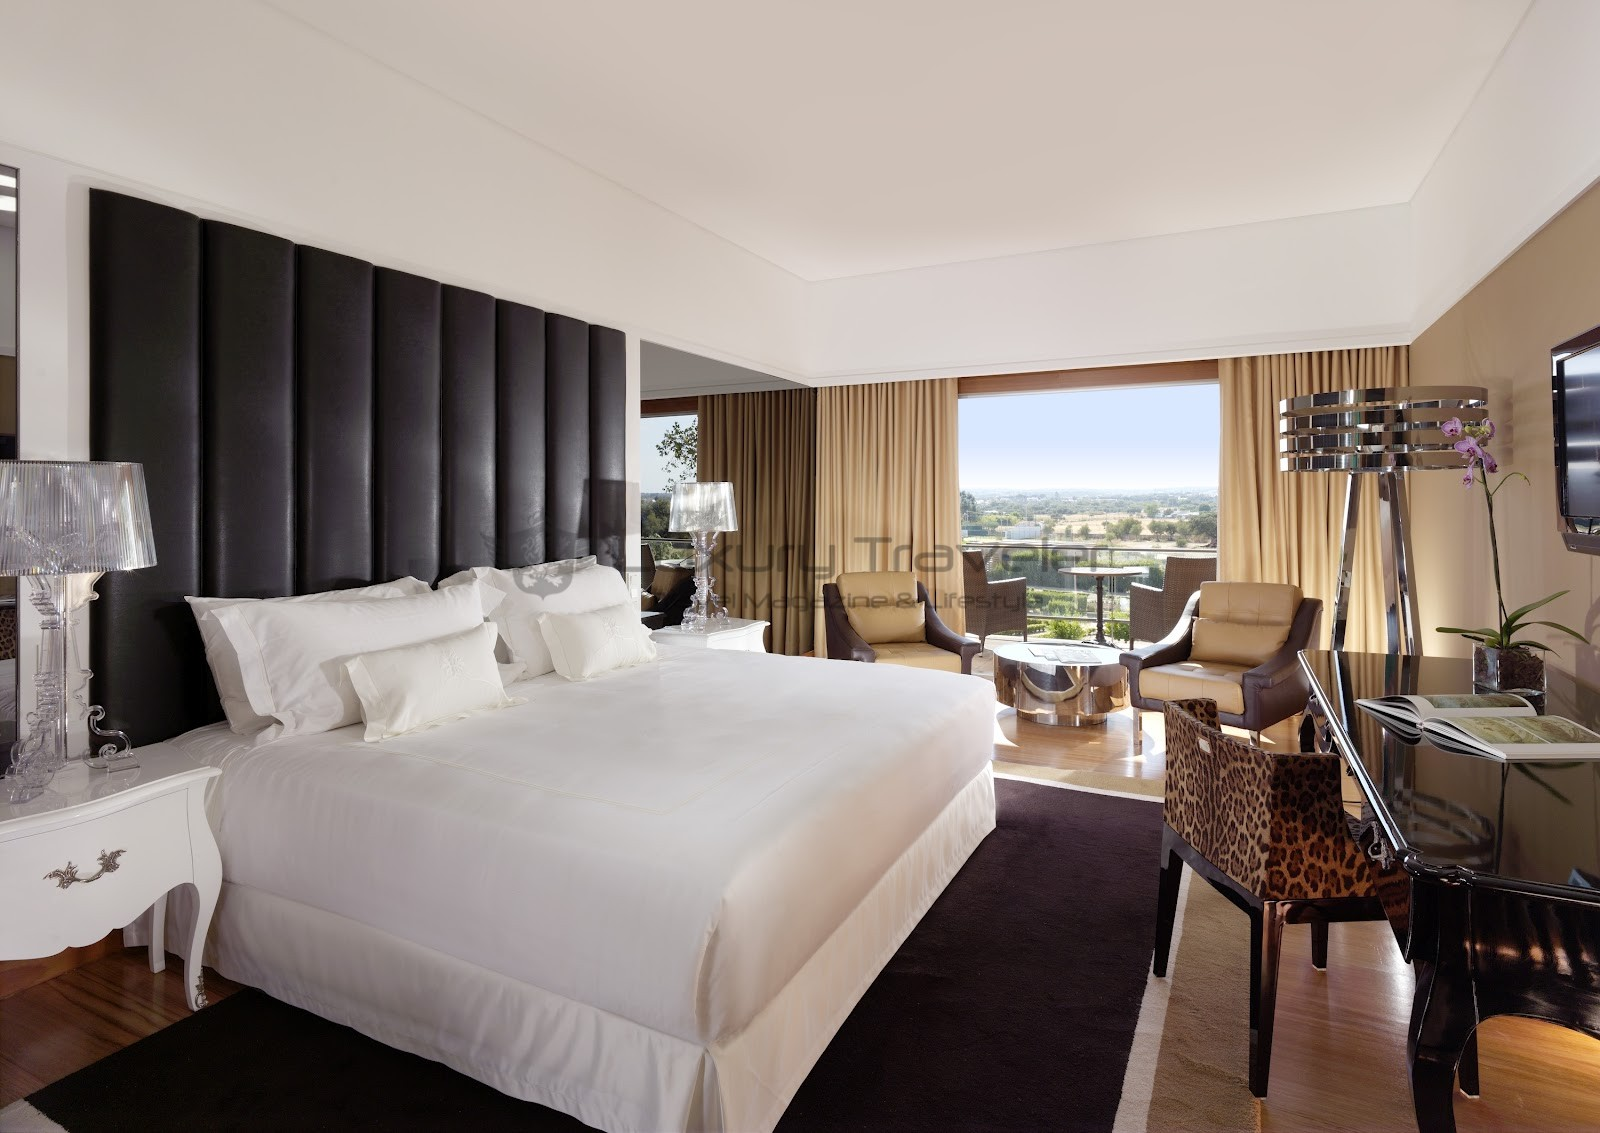 Convento_Espinheiro_Hotel_Evora_Starwood_Design_Room_Luxury